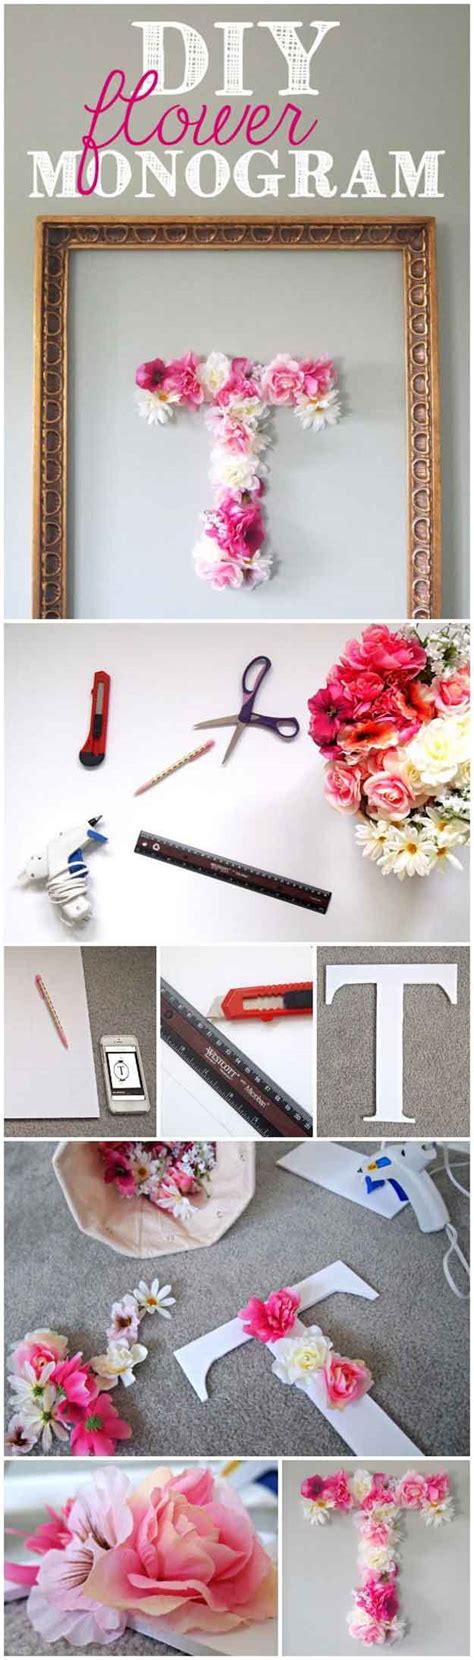 Bedroom Diy Projects | diy projects for teens bedroom diy ready